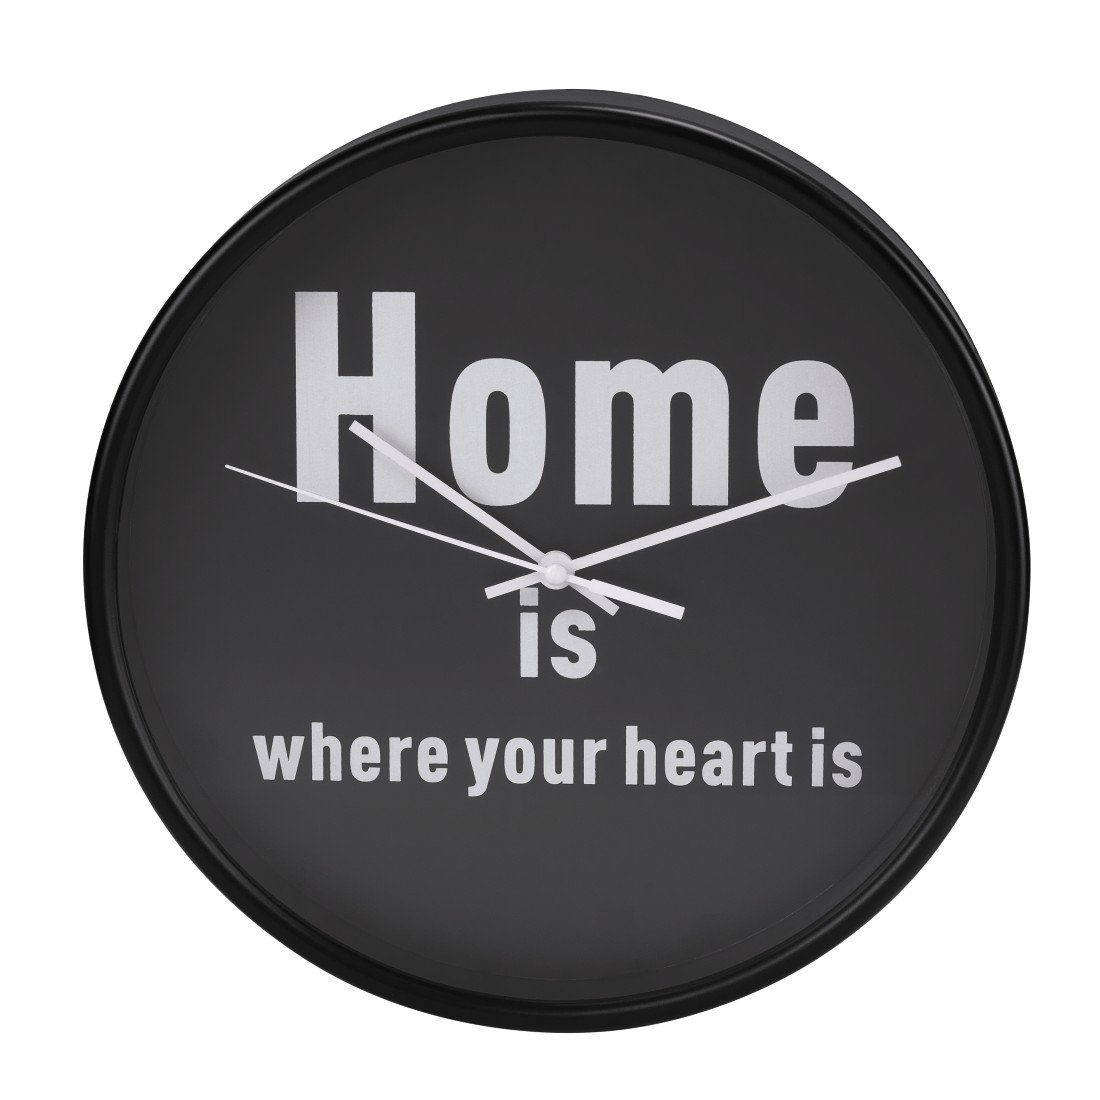 Hama Wanduhr geräuscharme Uhr ohne Ticken, leise, 26 cm, rund »Home is where your heart is«